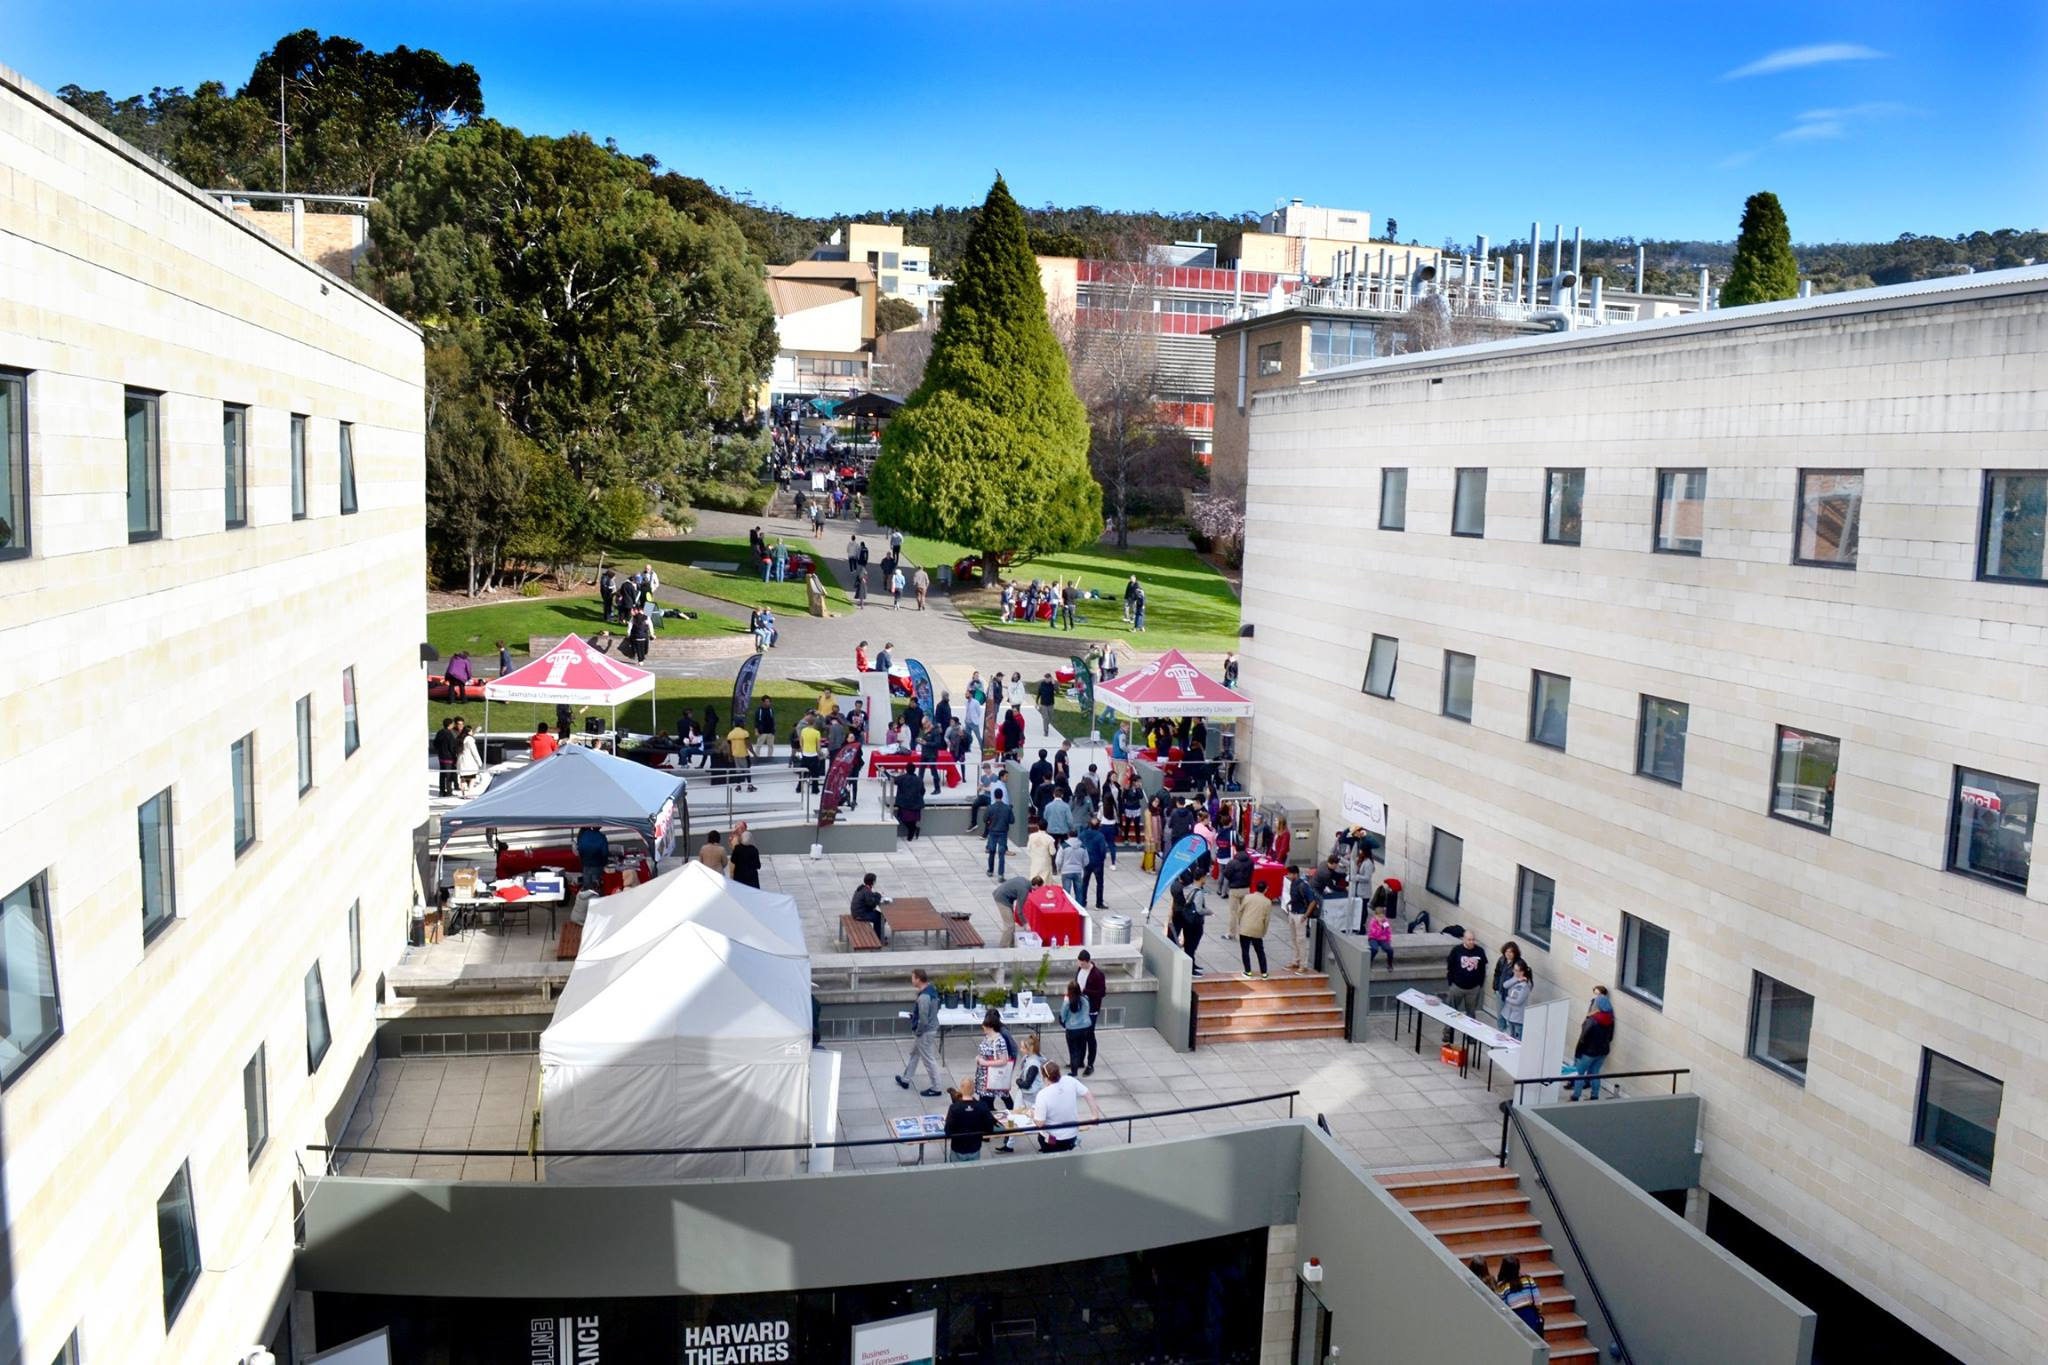 University of Tasmania - UTAS Campus